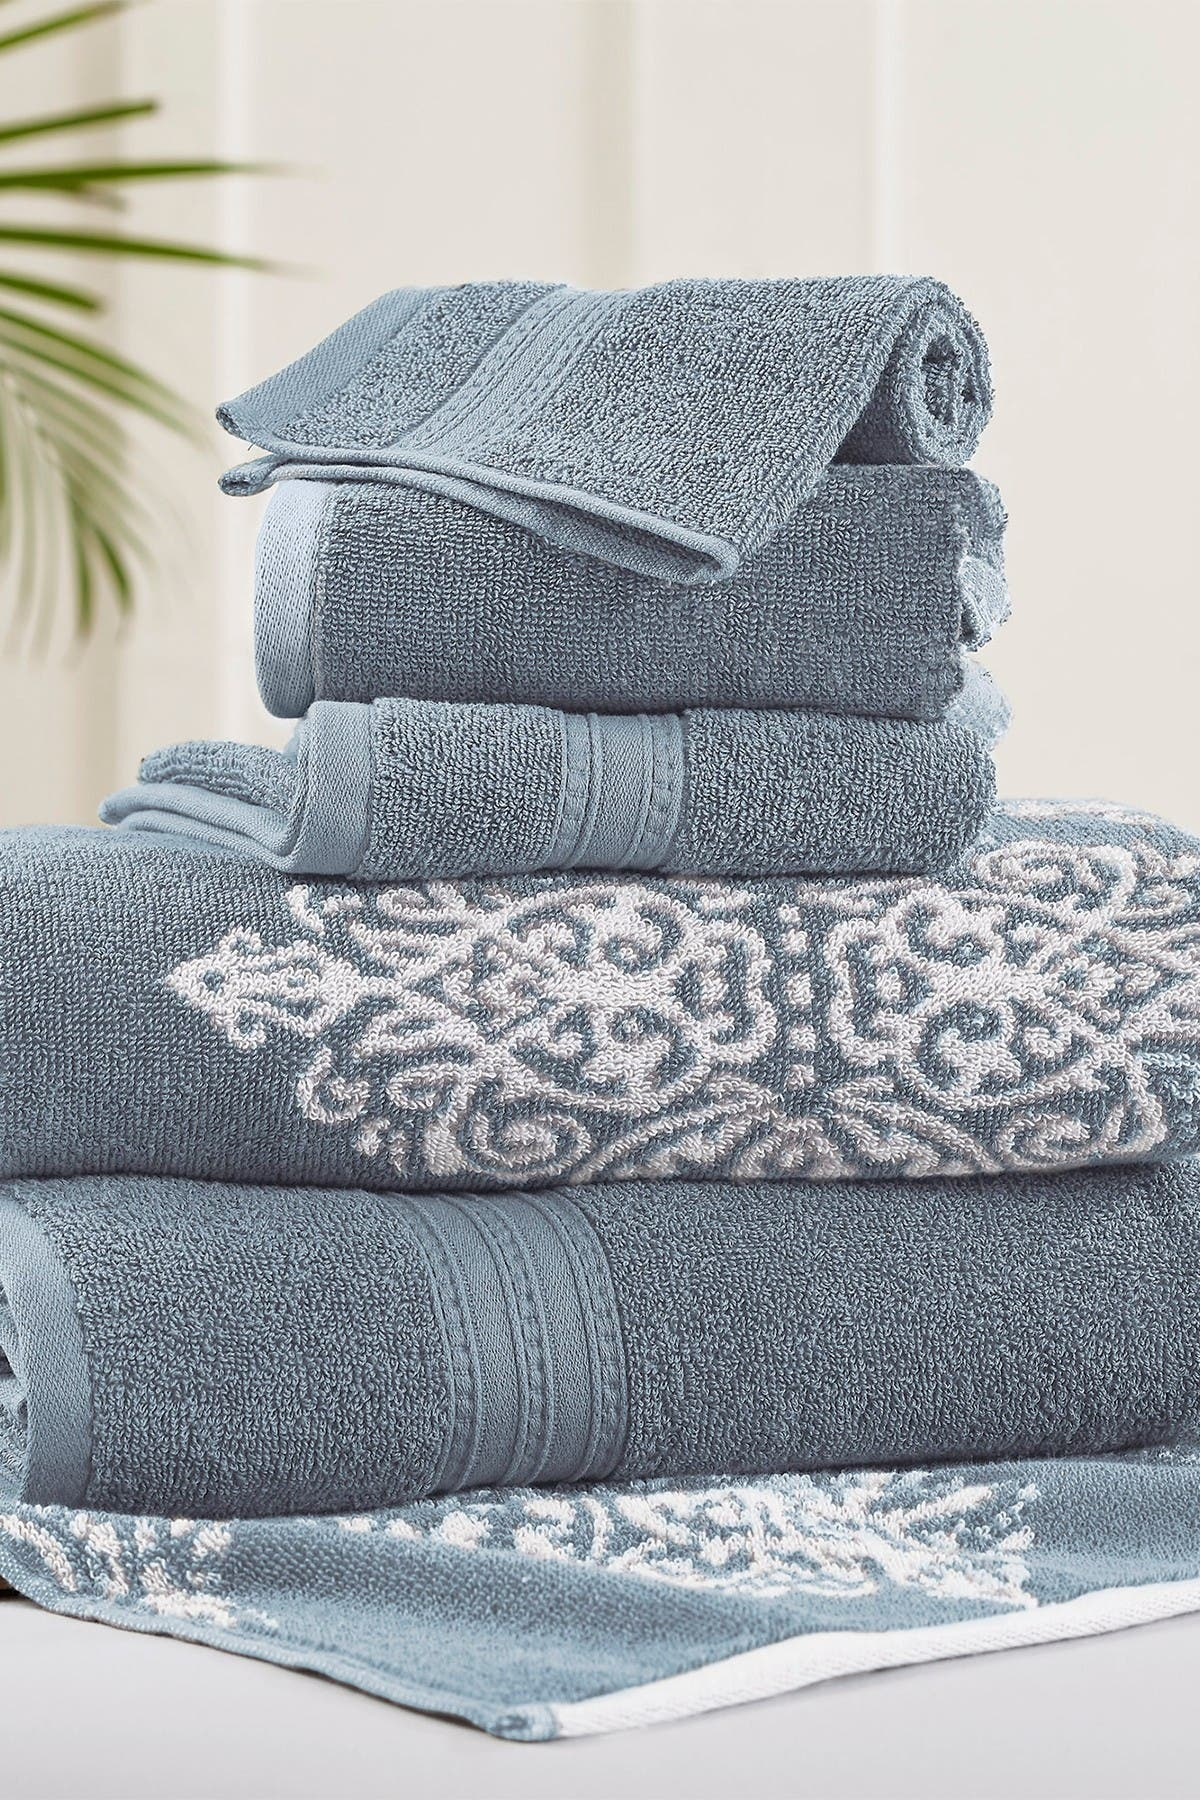 Image of Modern Threads Sterling Blue Artesia Damask Reversible Yarn-Dyed Jacquard 6-Piece Towel Set